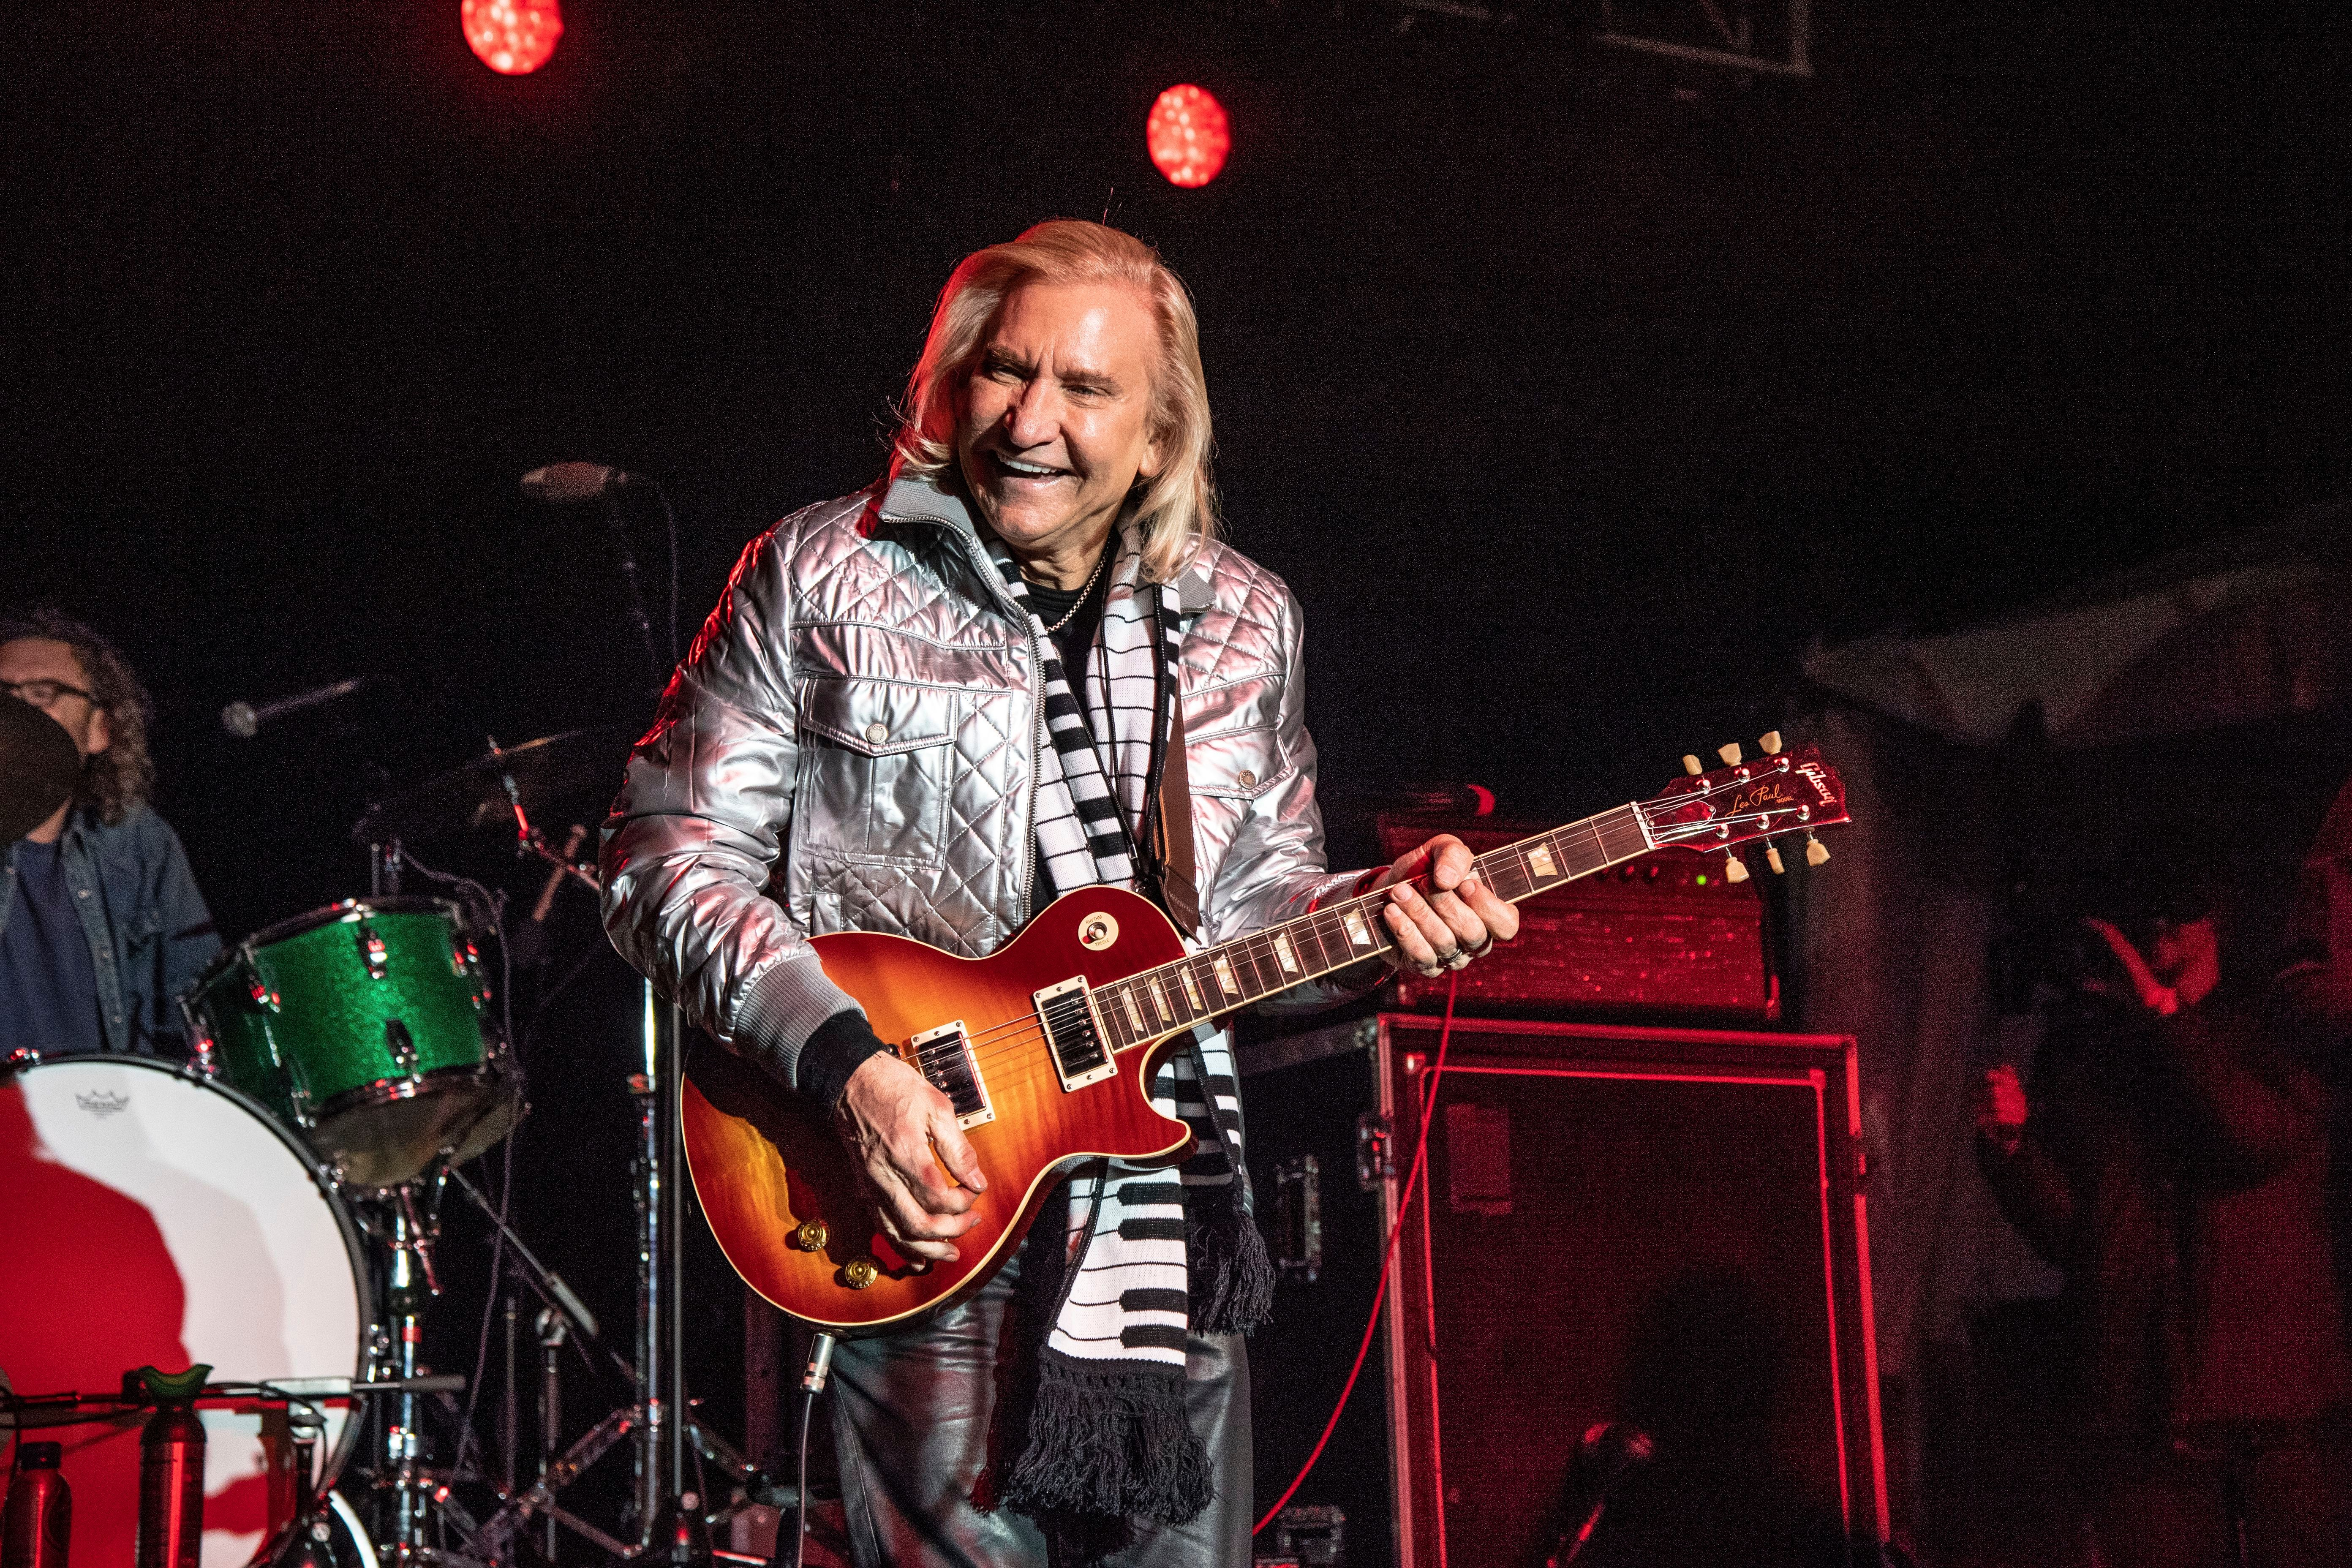 Watch Joe Walsh Perform With Ringo Starr, James Taylor at VetsAid 2018